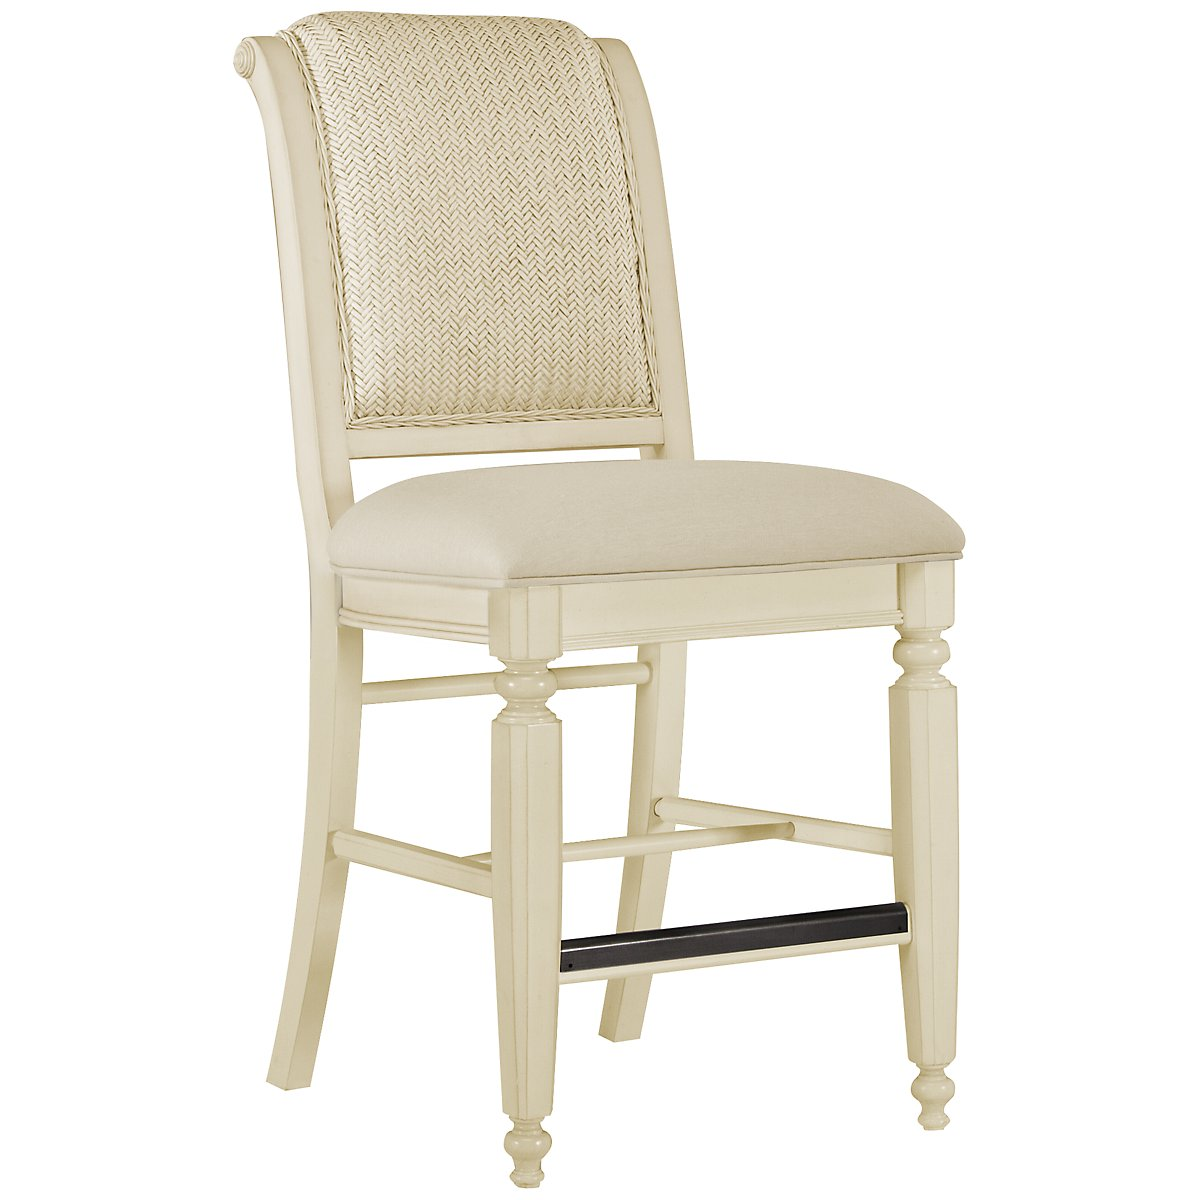 "Claire White 24"" Woven Barstool"